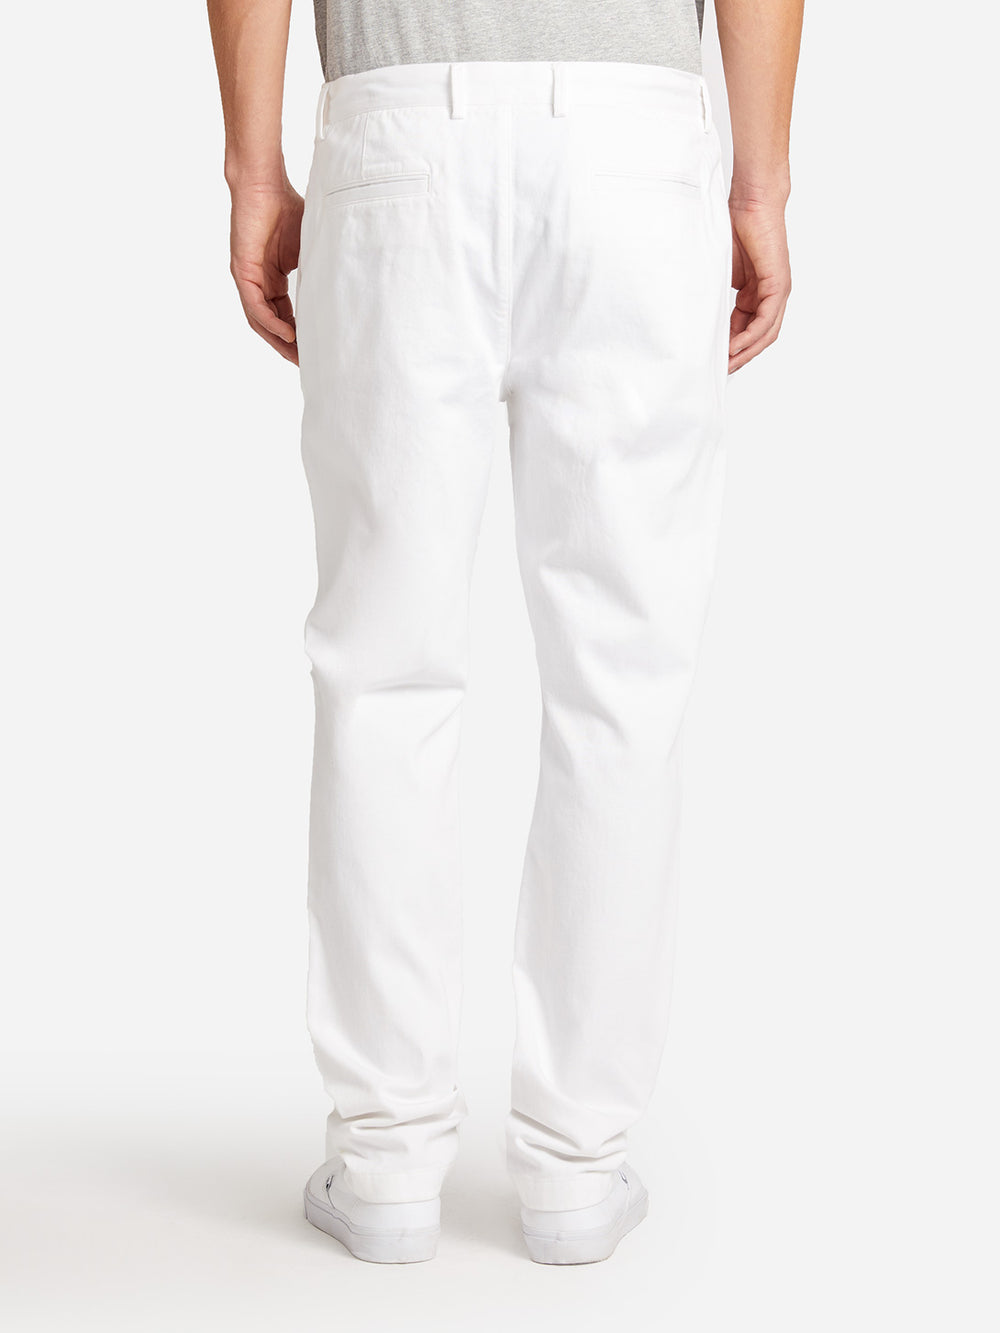 ONS CLOTHING RIDER CHINO BRIGHT WHITE